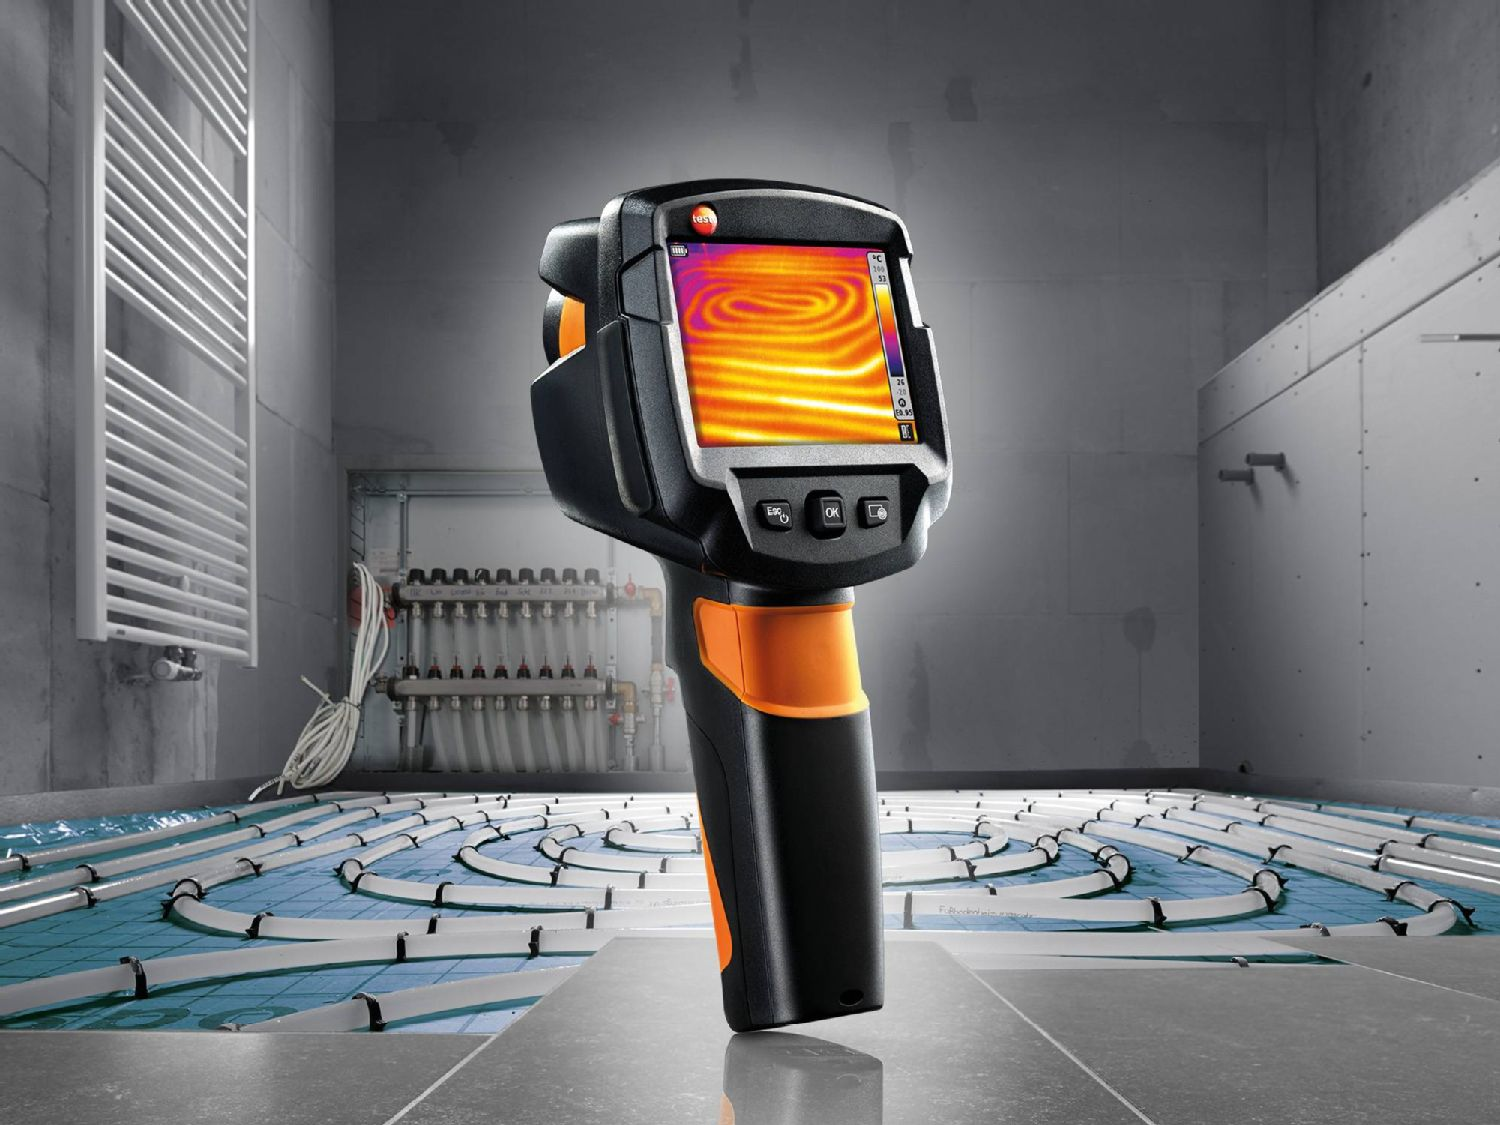 Leakage detection with thermal imagers